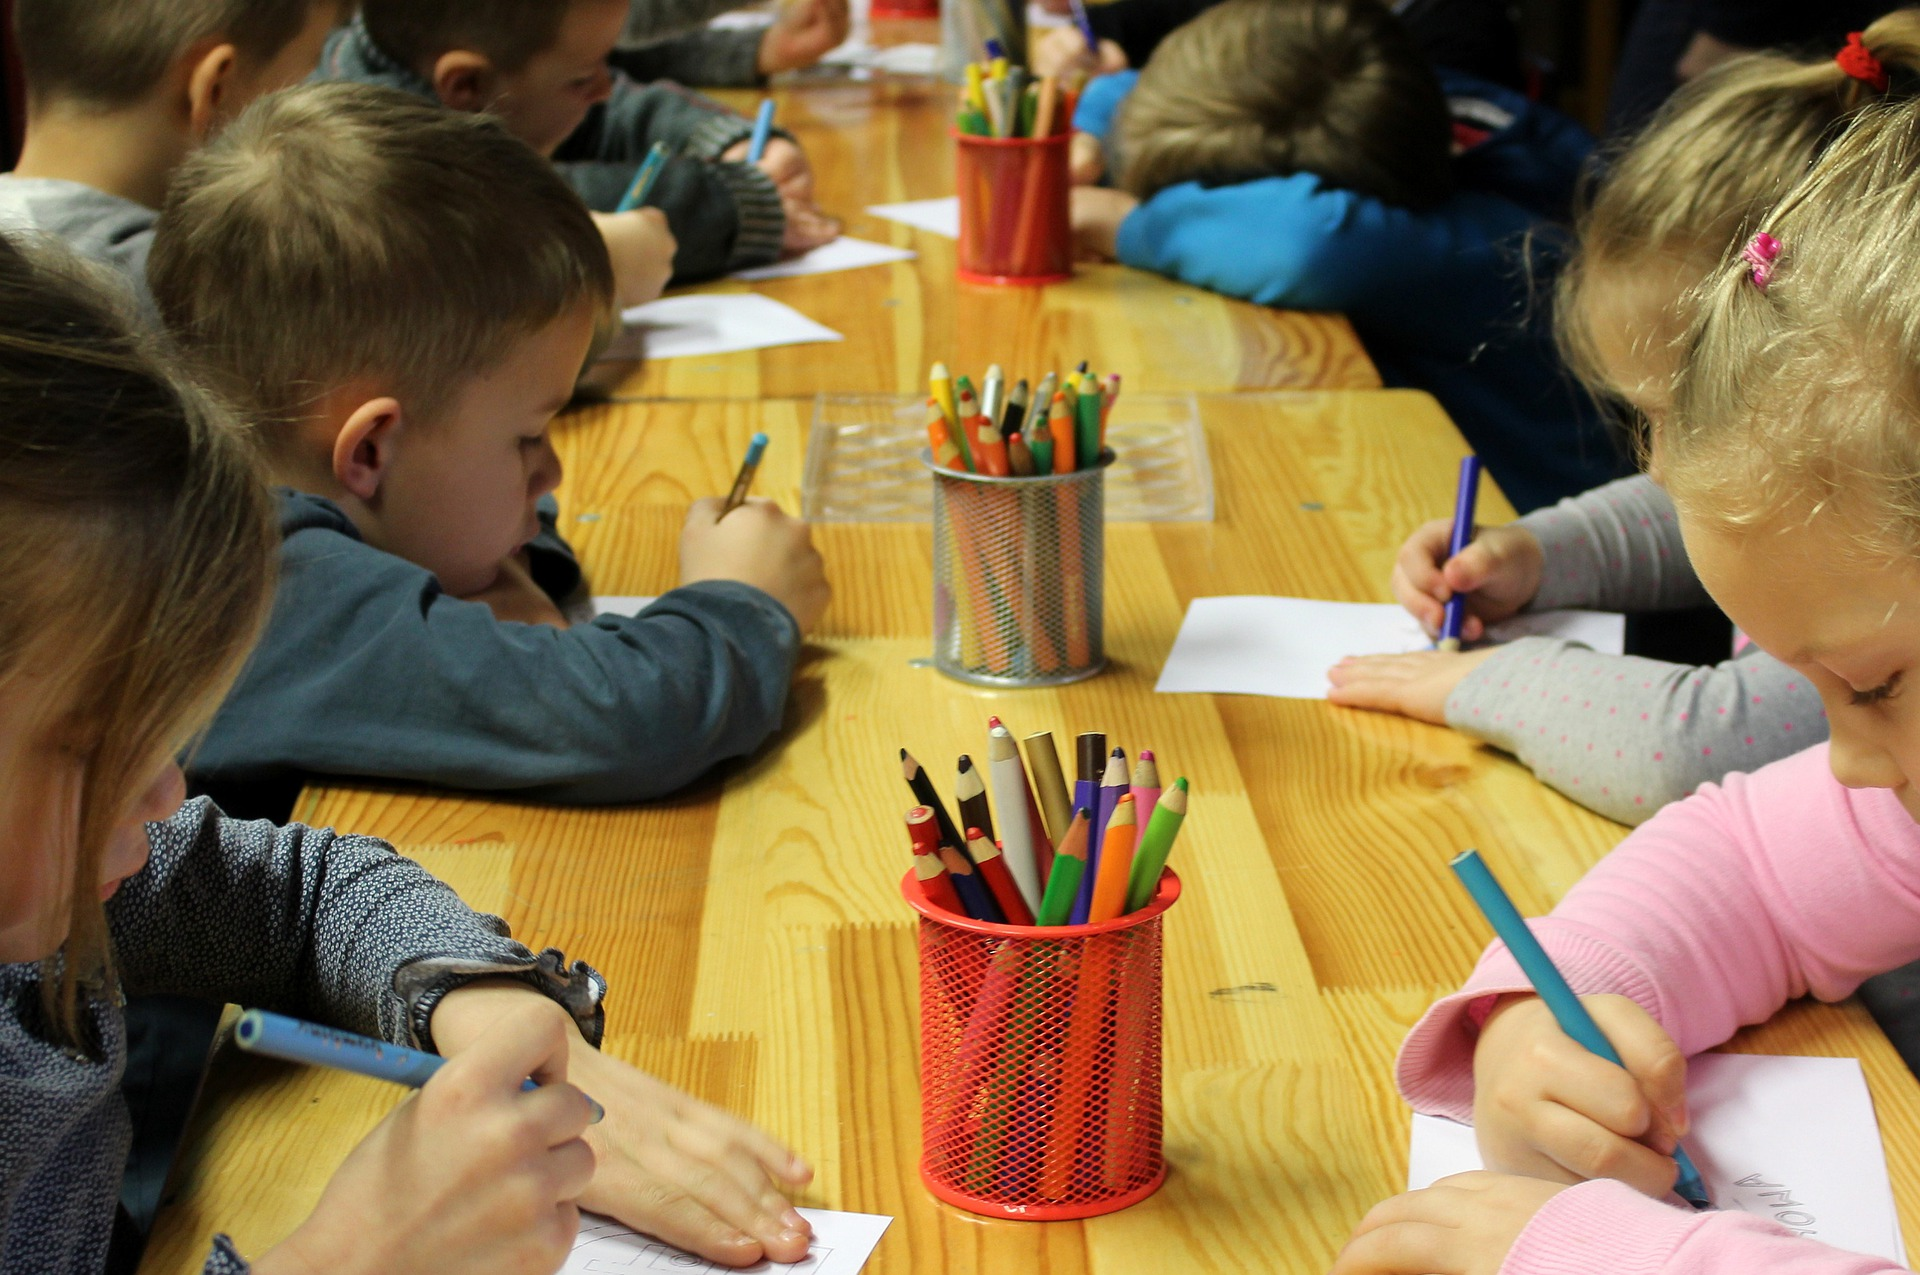 A group of kindergarten students sits at a long table, writing on paper with pencil crayons.